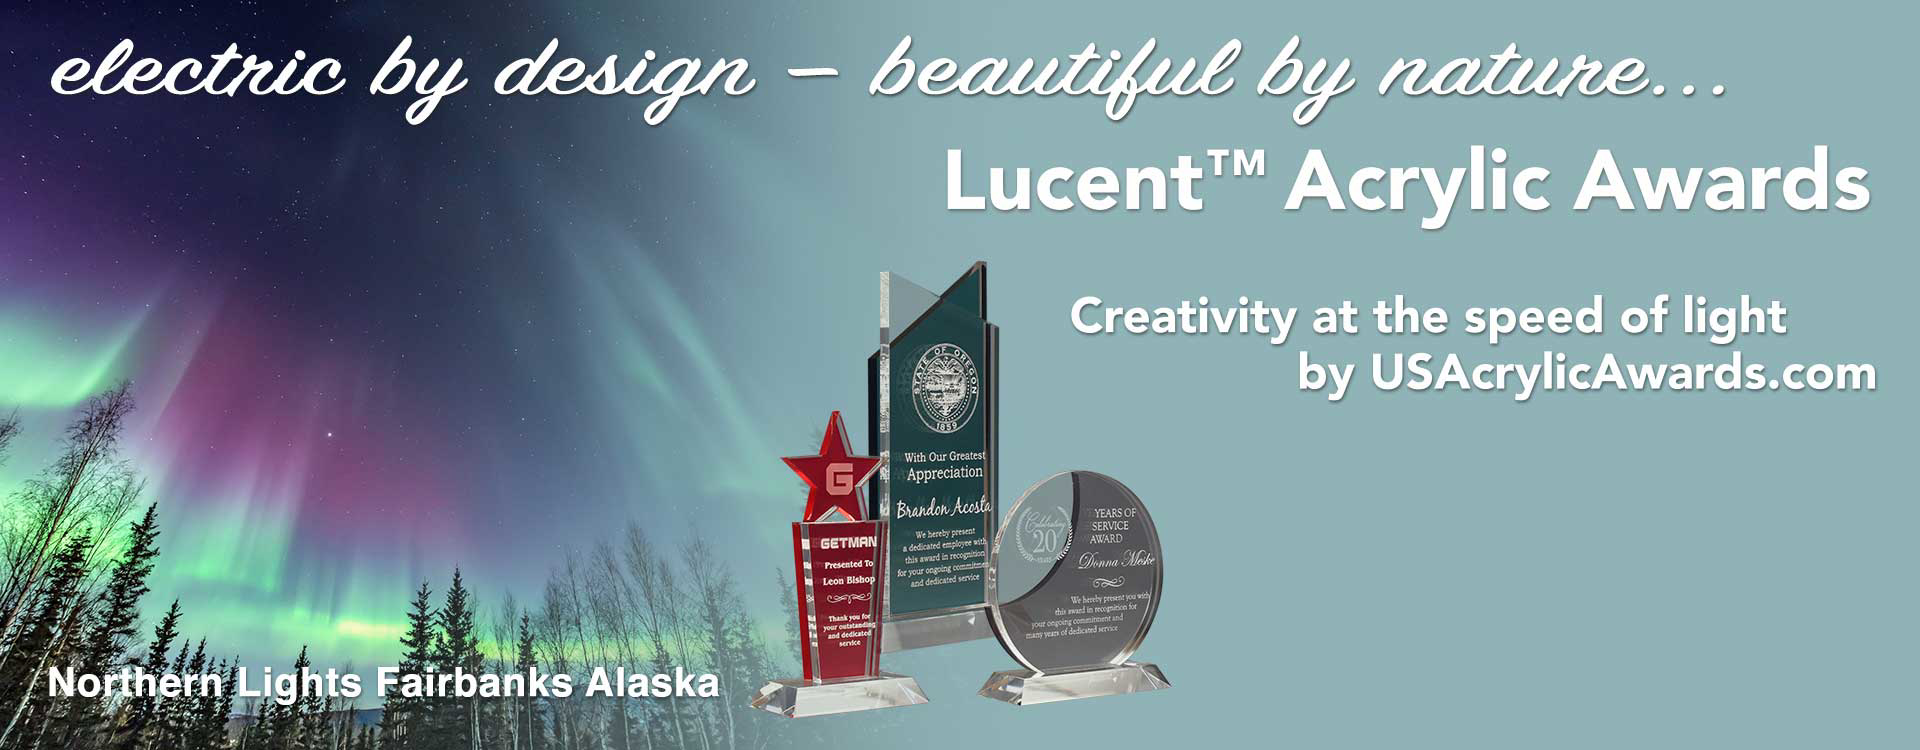 Northern lights over Fairbanks Alaska showing beauty of light and color to represent Lucent™ Acrylic Awards displayed with text electric by design — beautiful by nature...